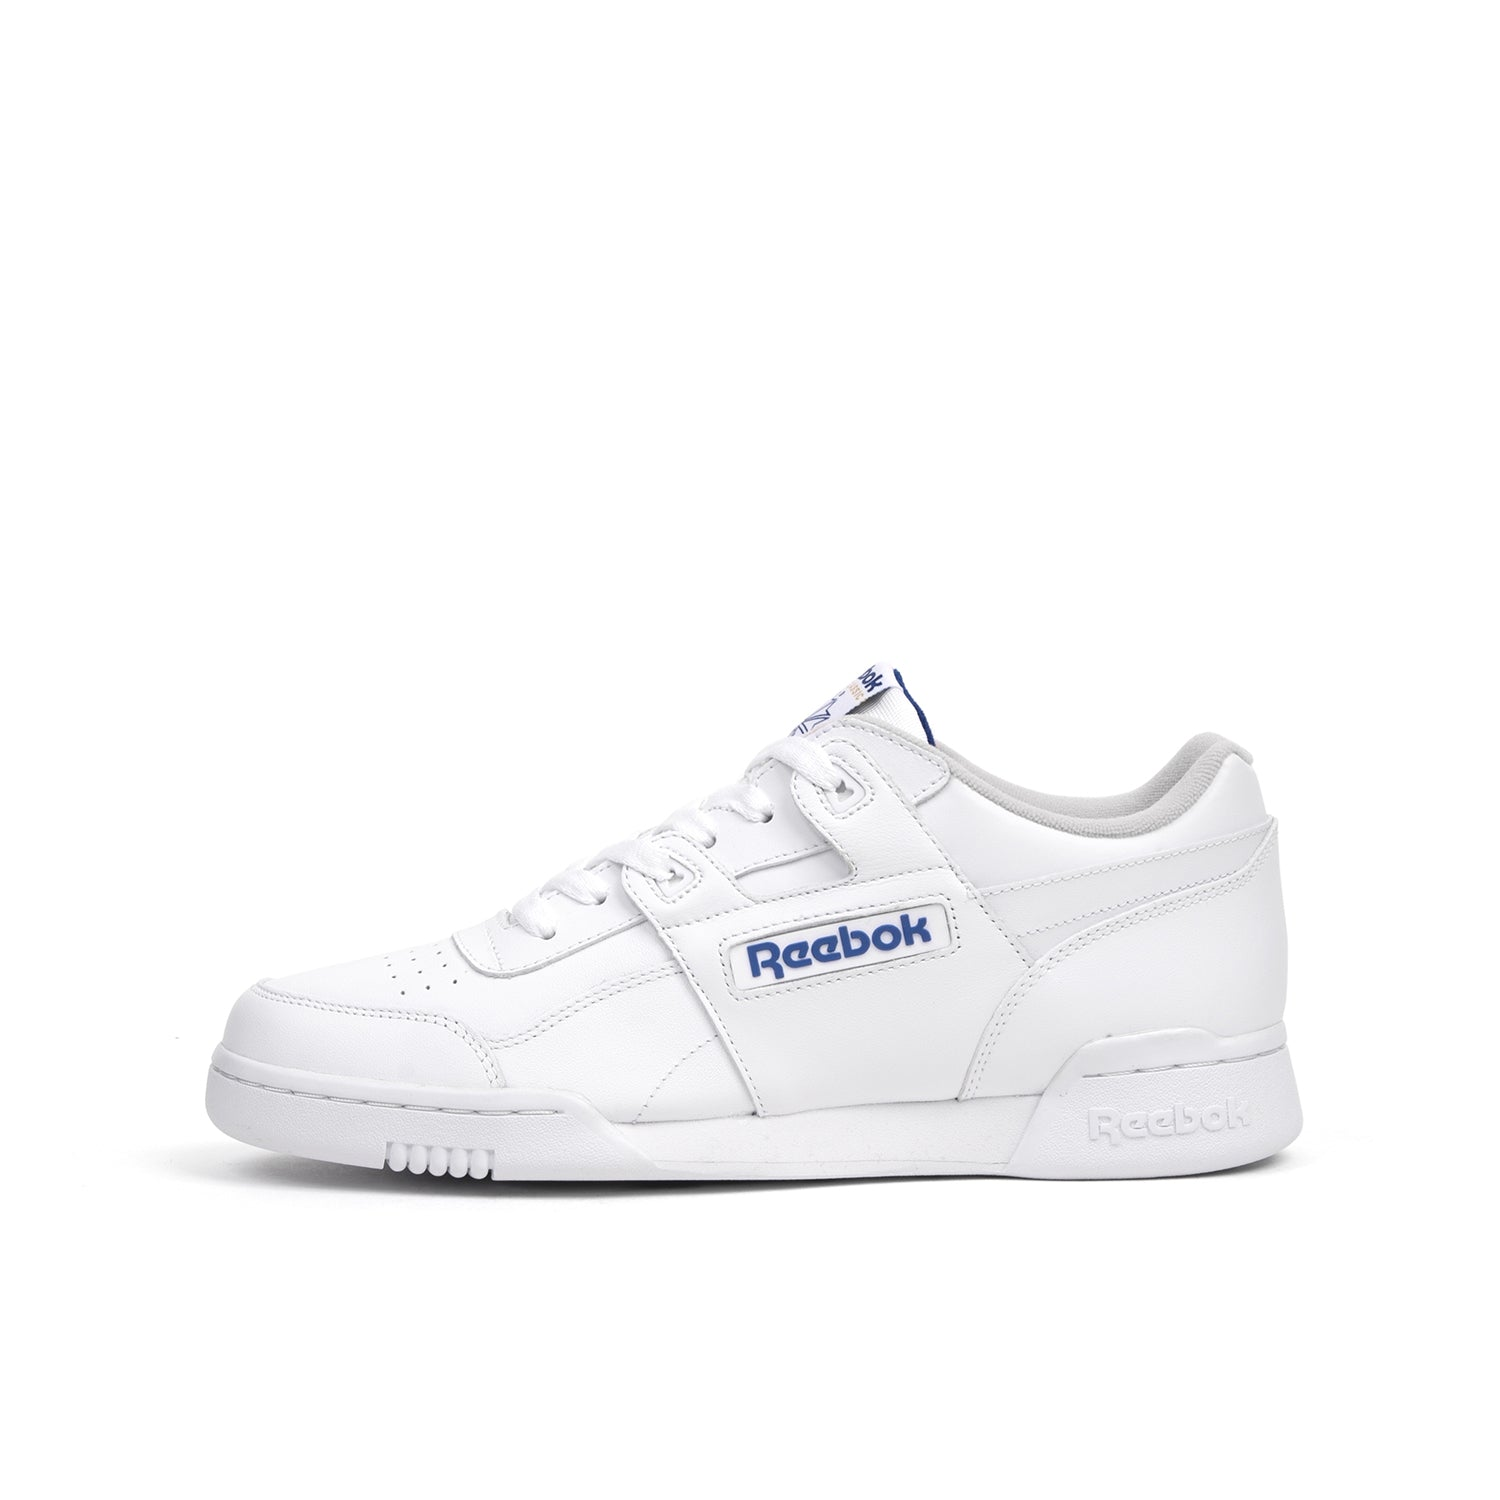 Reebok Workout Plus White/Royal - 2759